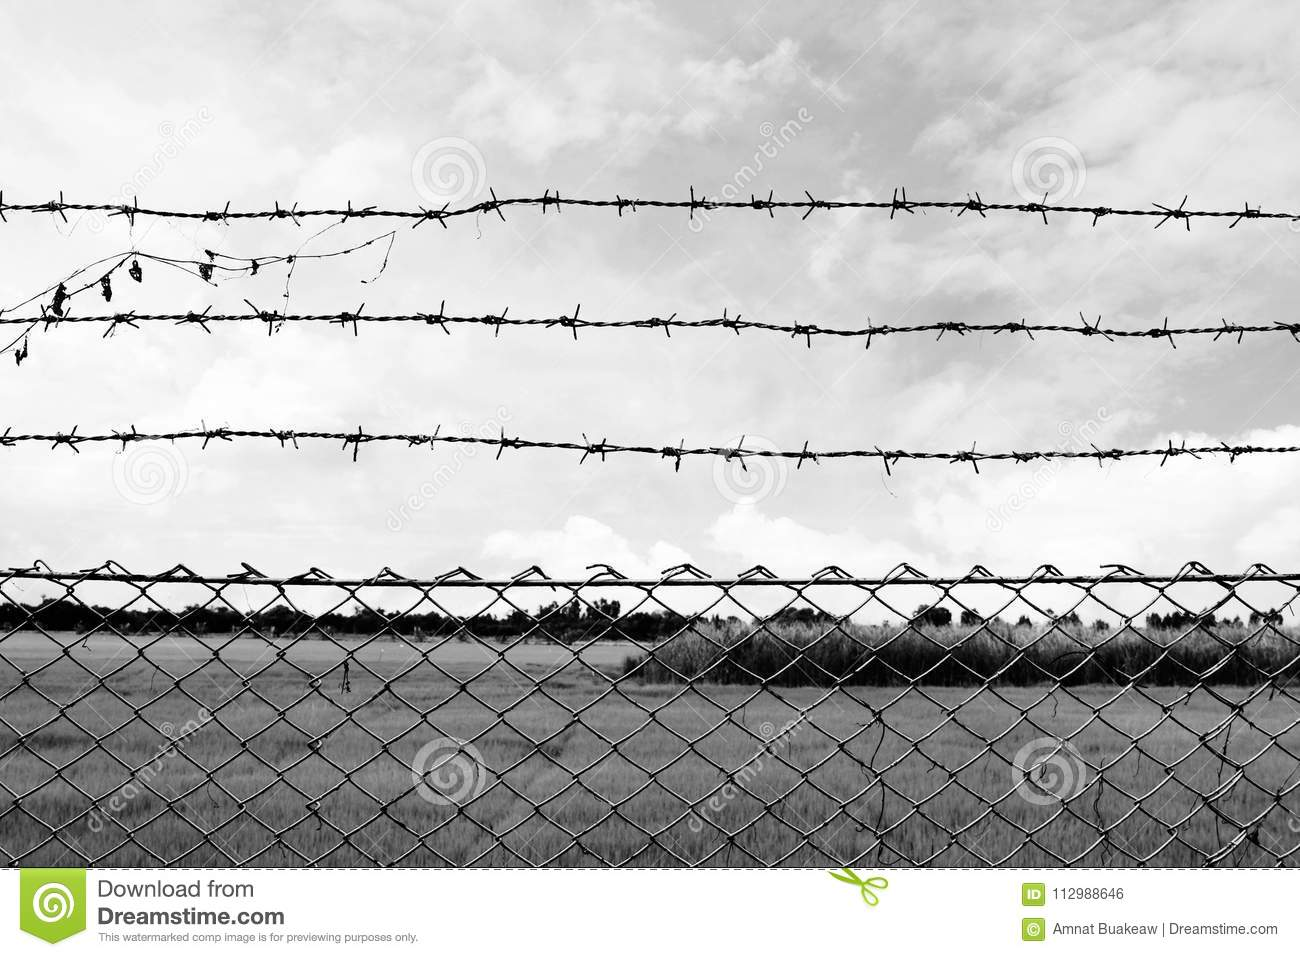 Barbed wire imprison, detention center, incarcerate, at countryside and background gray color style